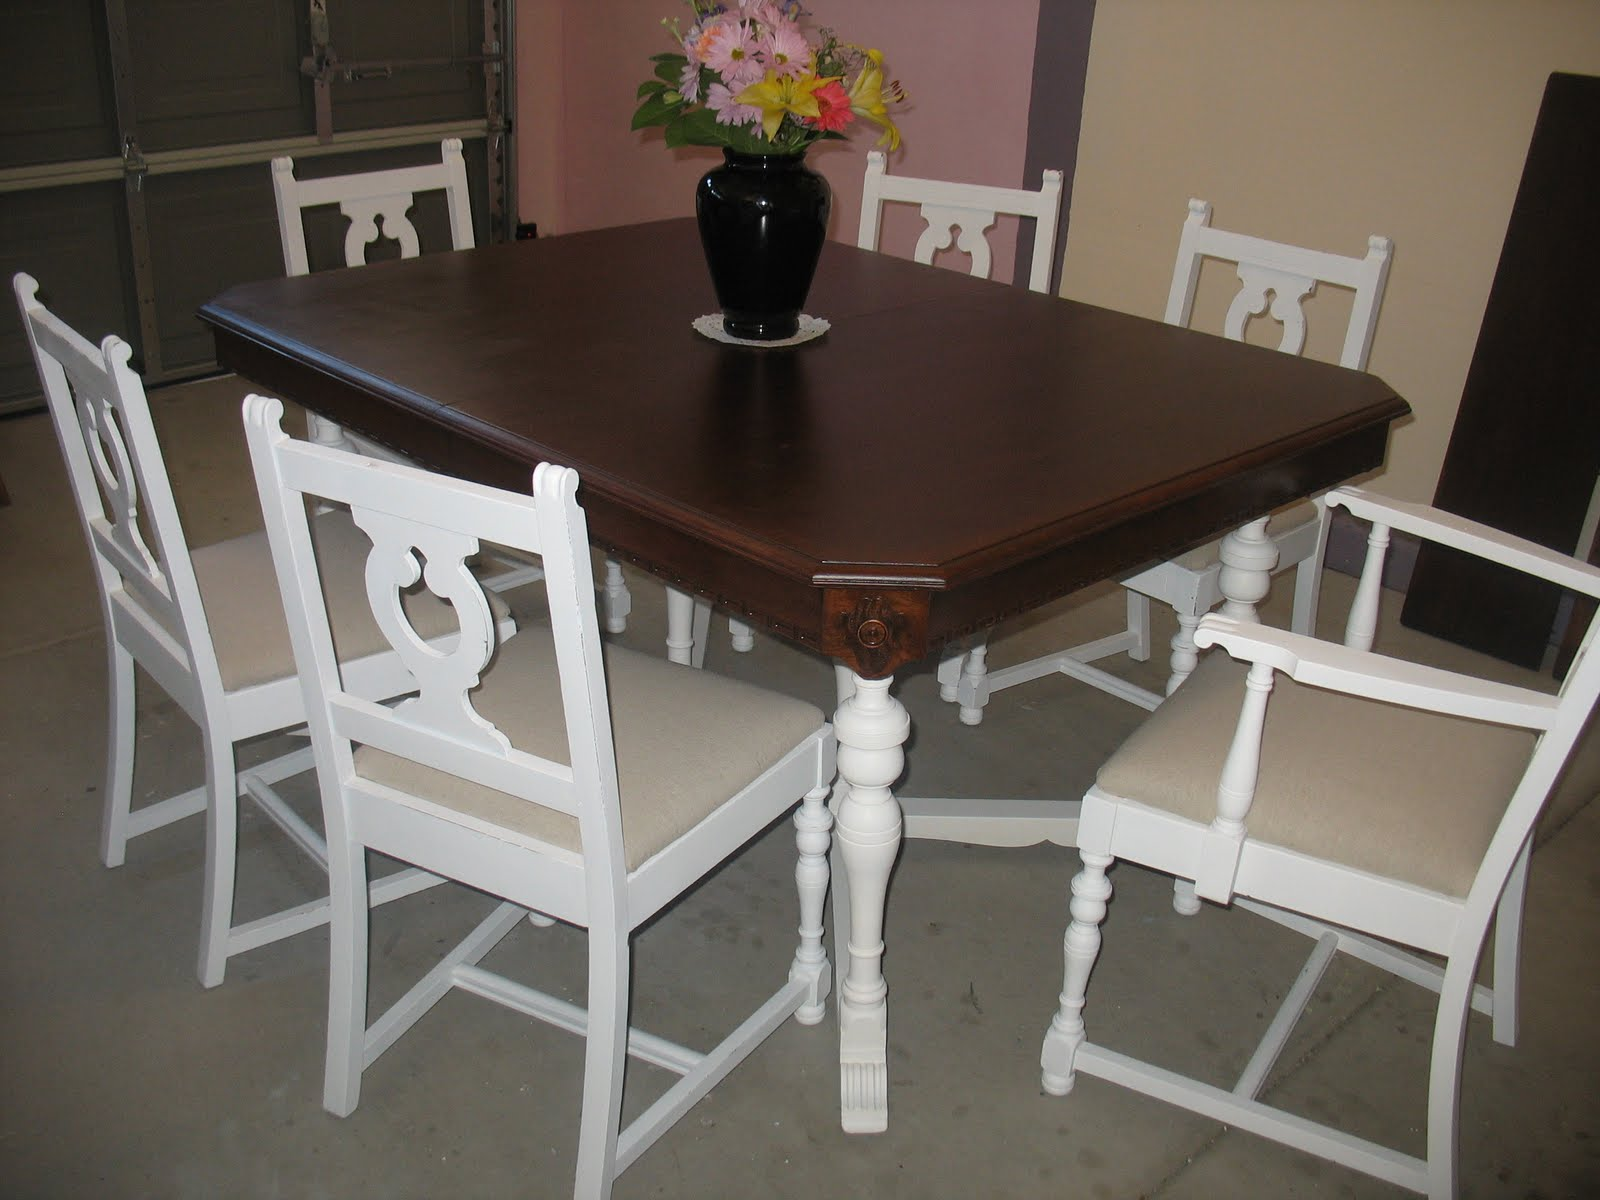 Shabby Chic Breakfast Table: Shabby Redo For You !: Shabby Chic Redo And Redo Again